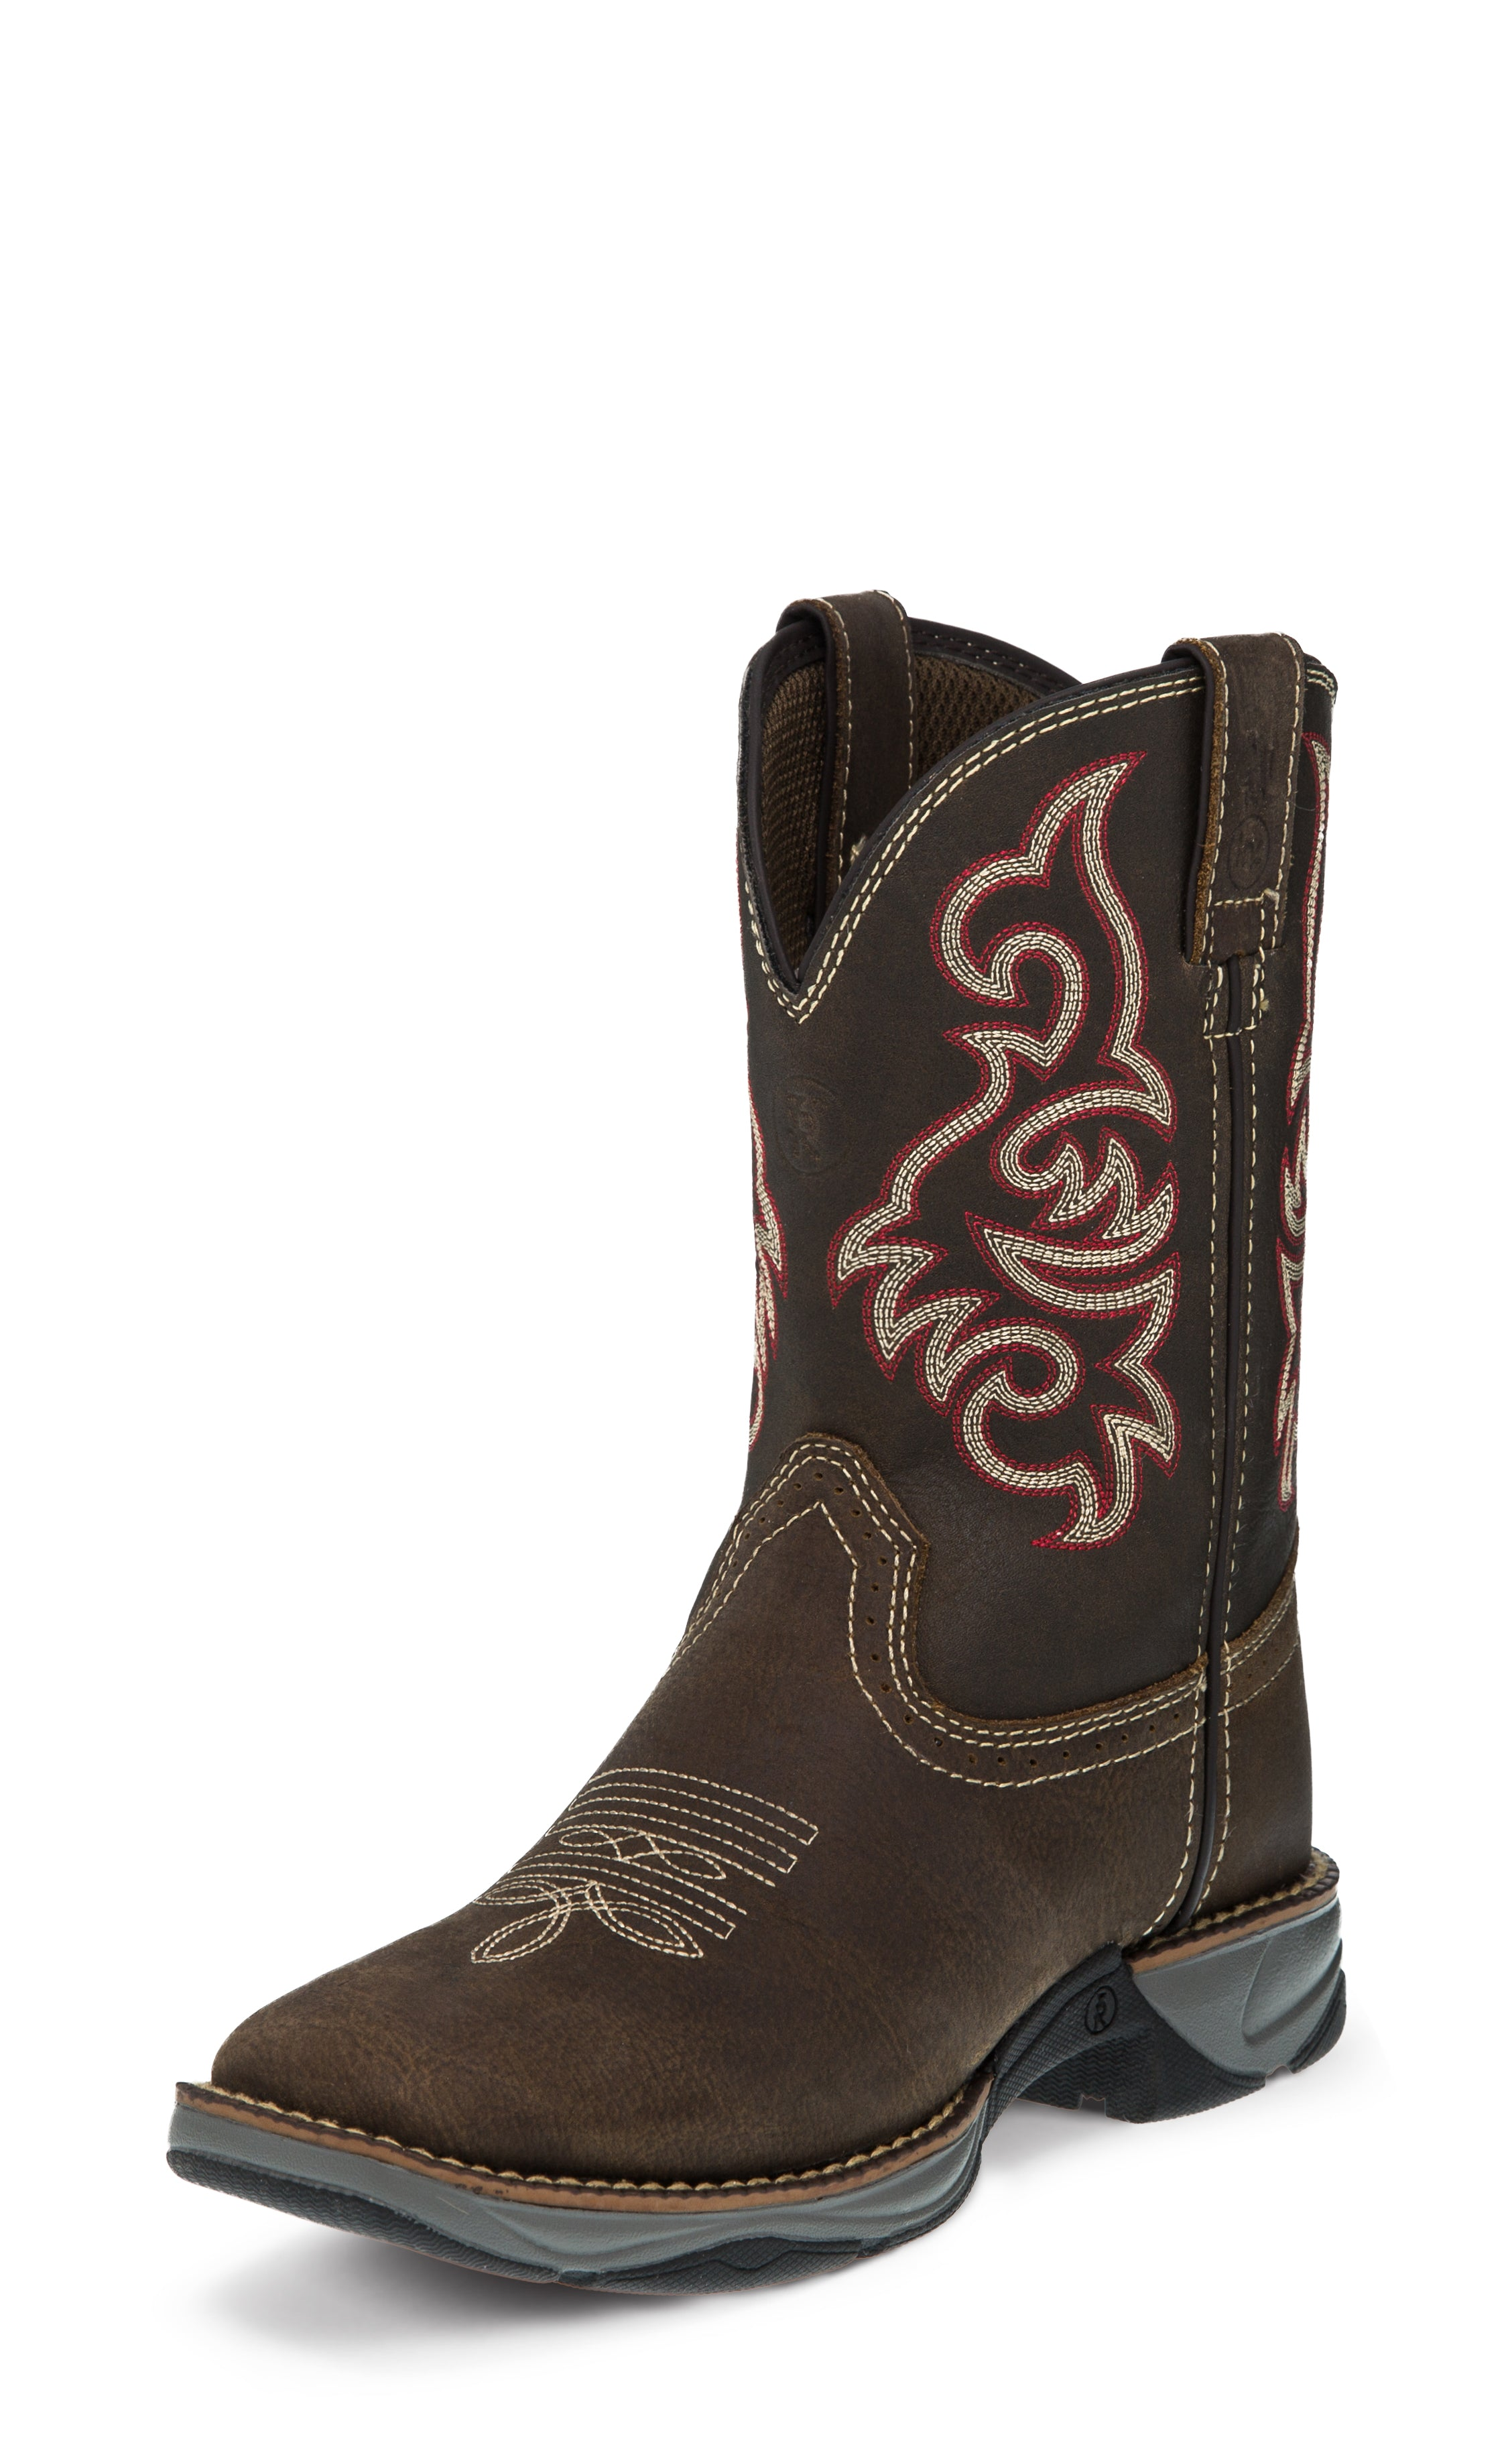 Spindletop Cowboy Boot - Brown Bayou / Chocolate Brown